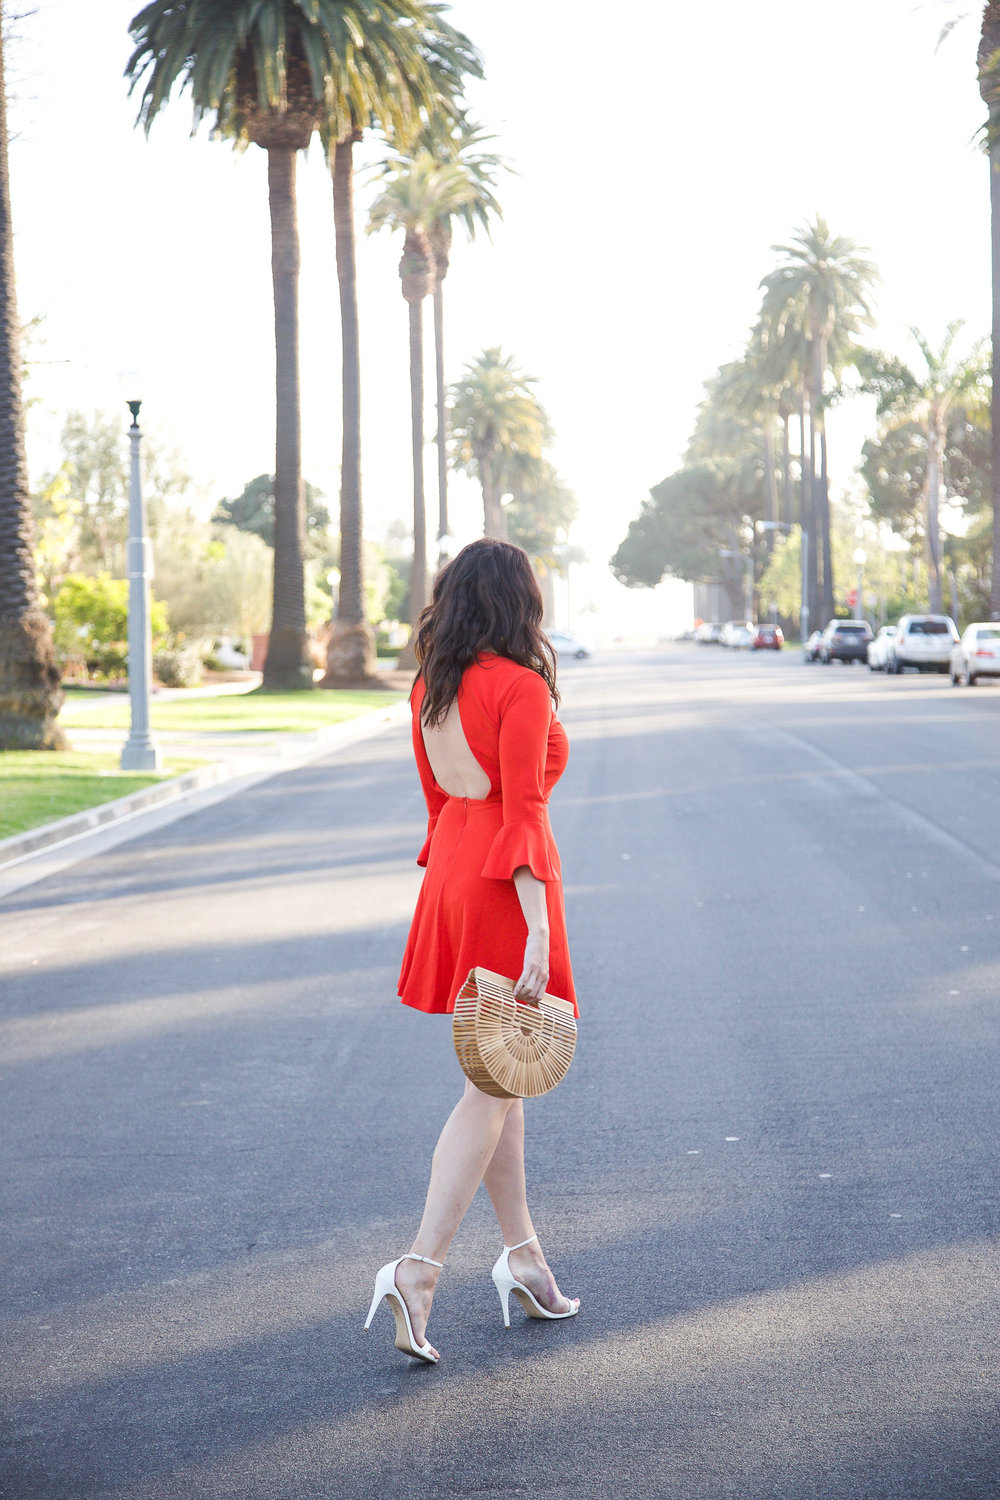 Lucy-Paris-Red-Bell-Sleeved-Dress5.jpg